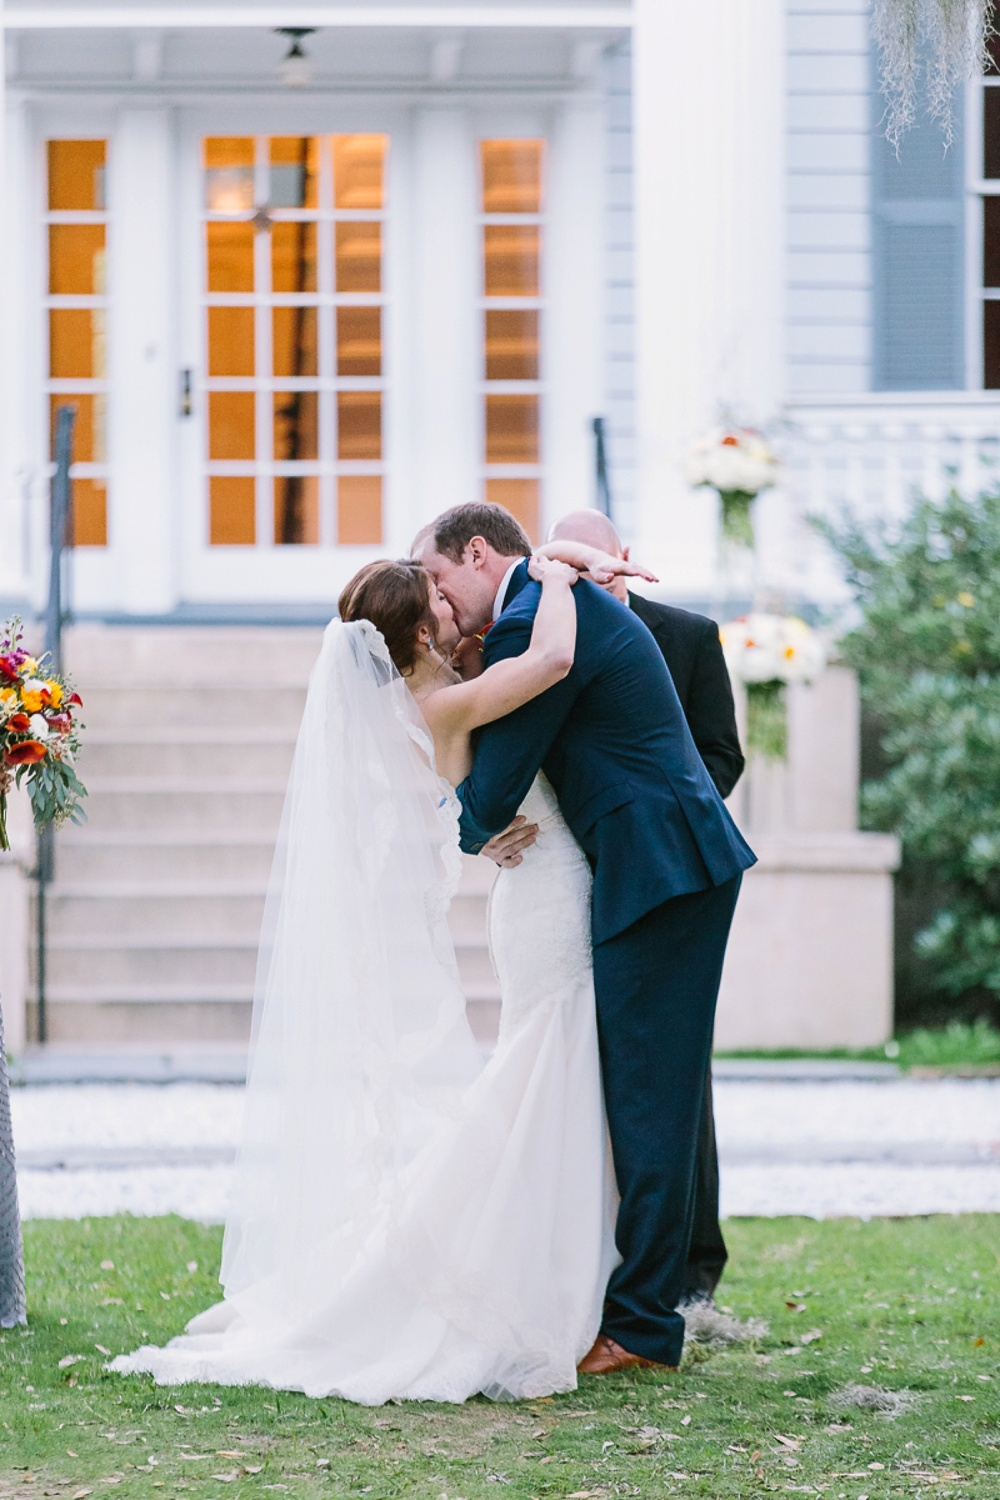 Lindsey_A_Miller_photography_charleston_mcleod_plantation_wedding_row_of_oaks_southern_classic_fall_spanish_moss_historic_home_064.jpg